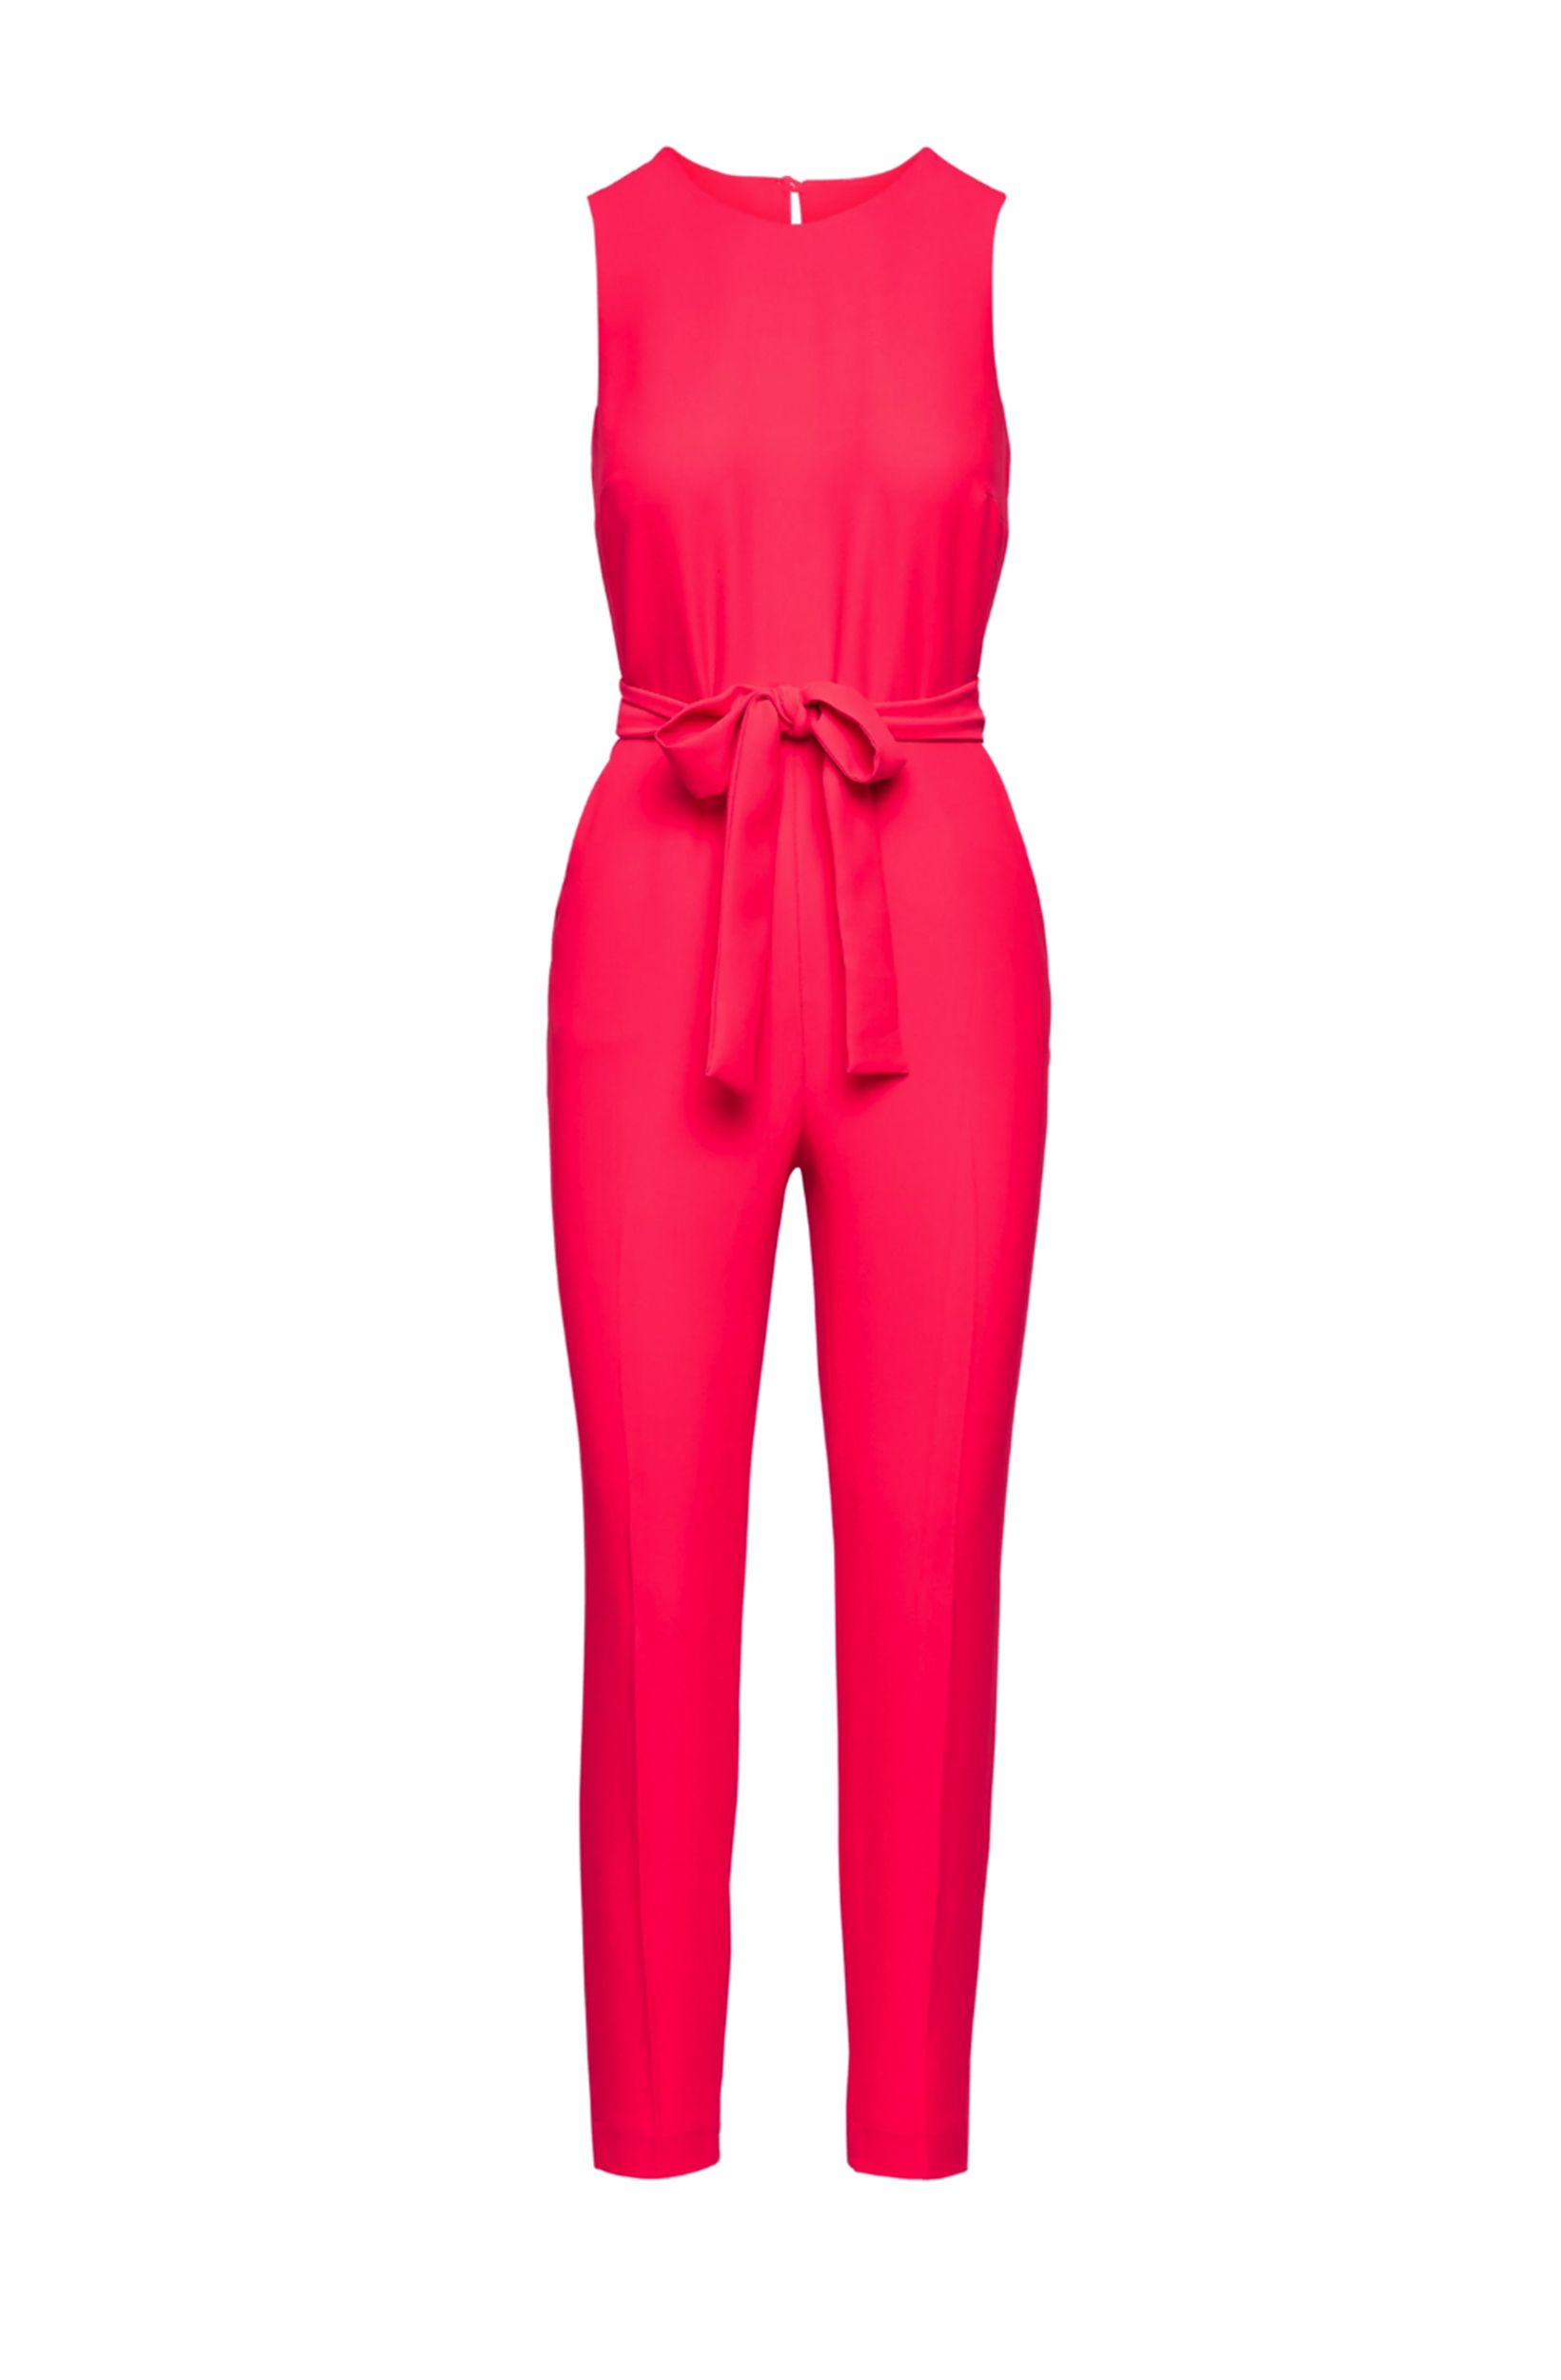 5b297dcc2103 Banana Republic Womens Belted Jumpsuit Hot Pink